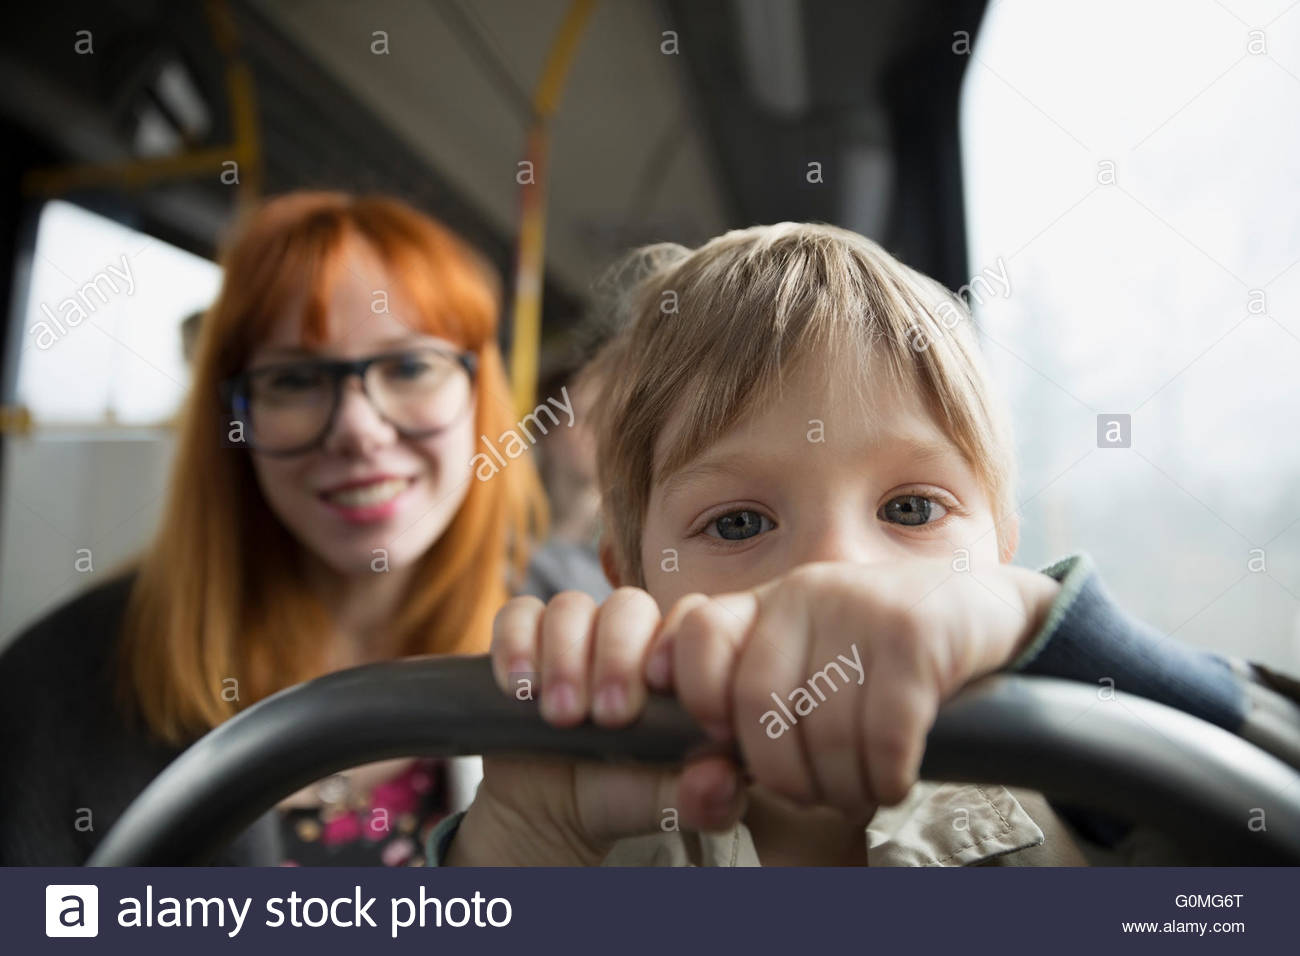 Curieux Portrait boy riding bus avec mère Photo Stock